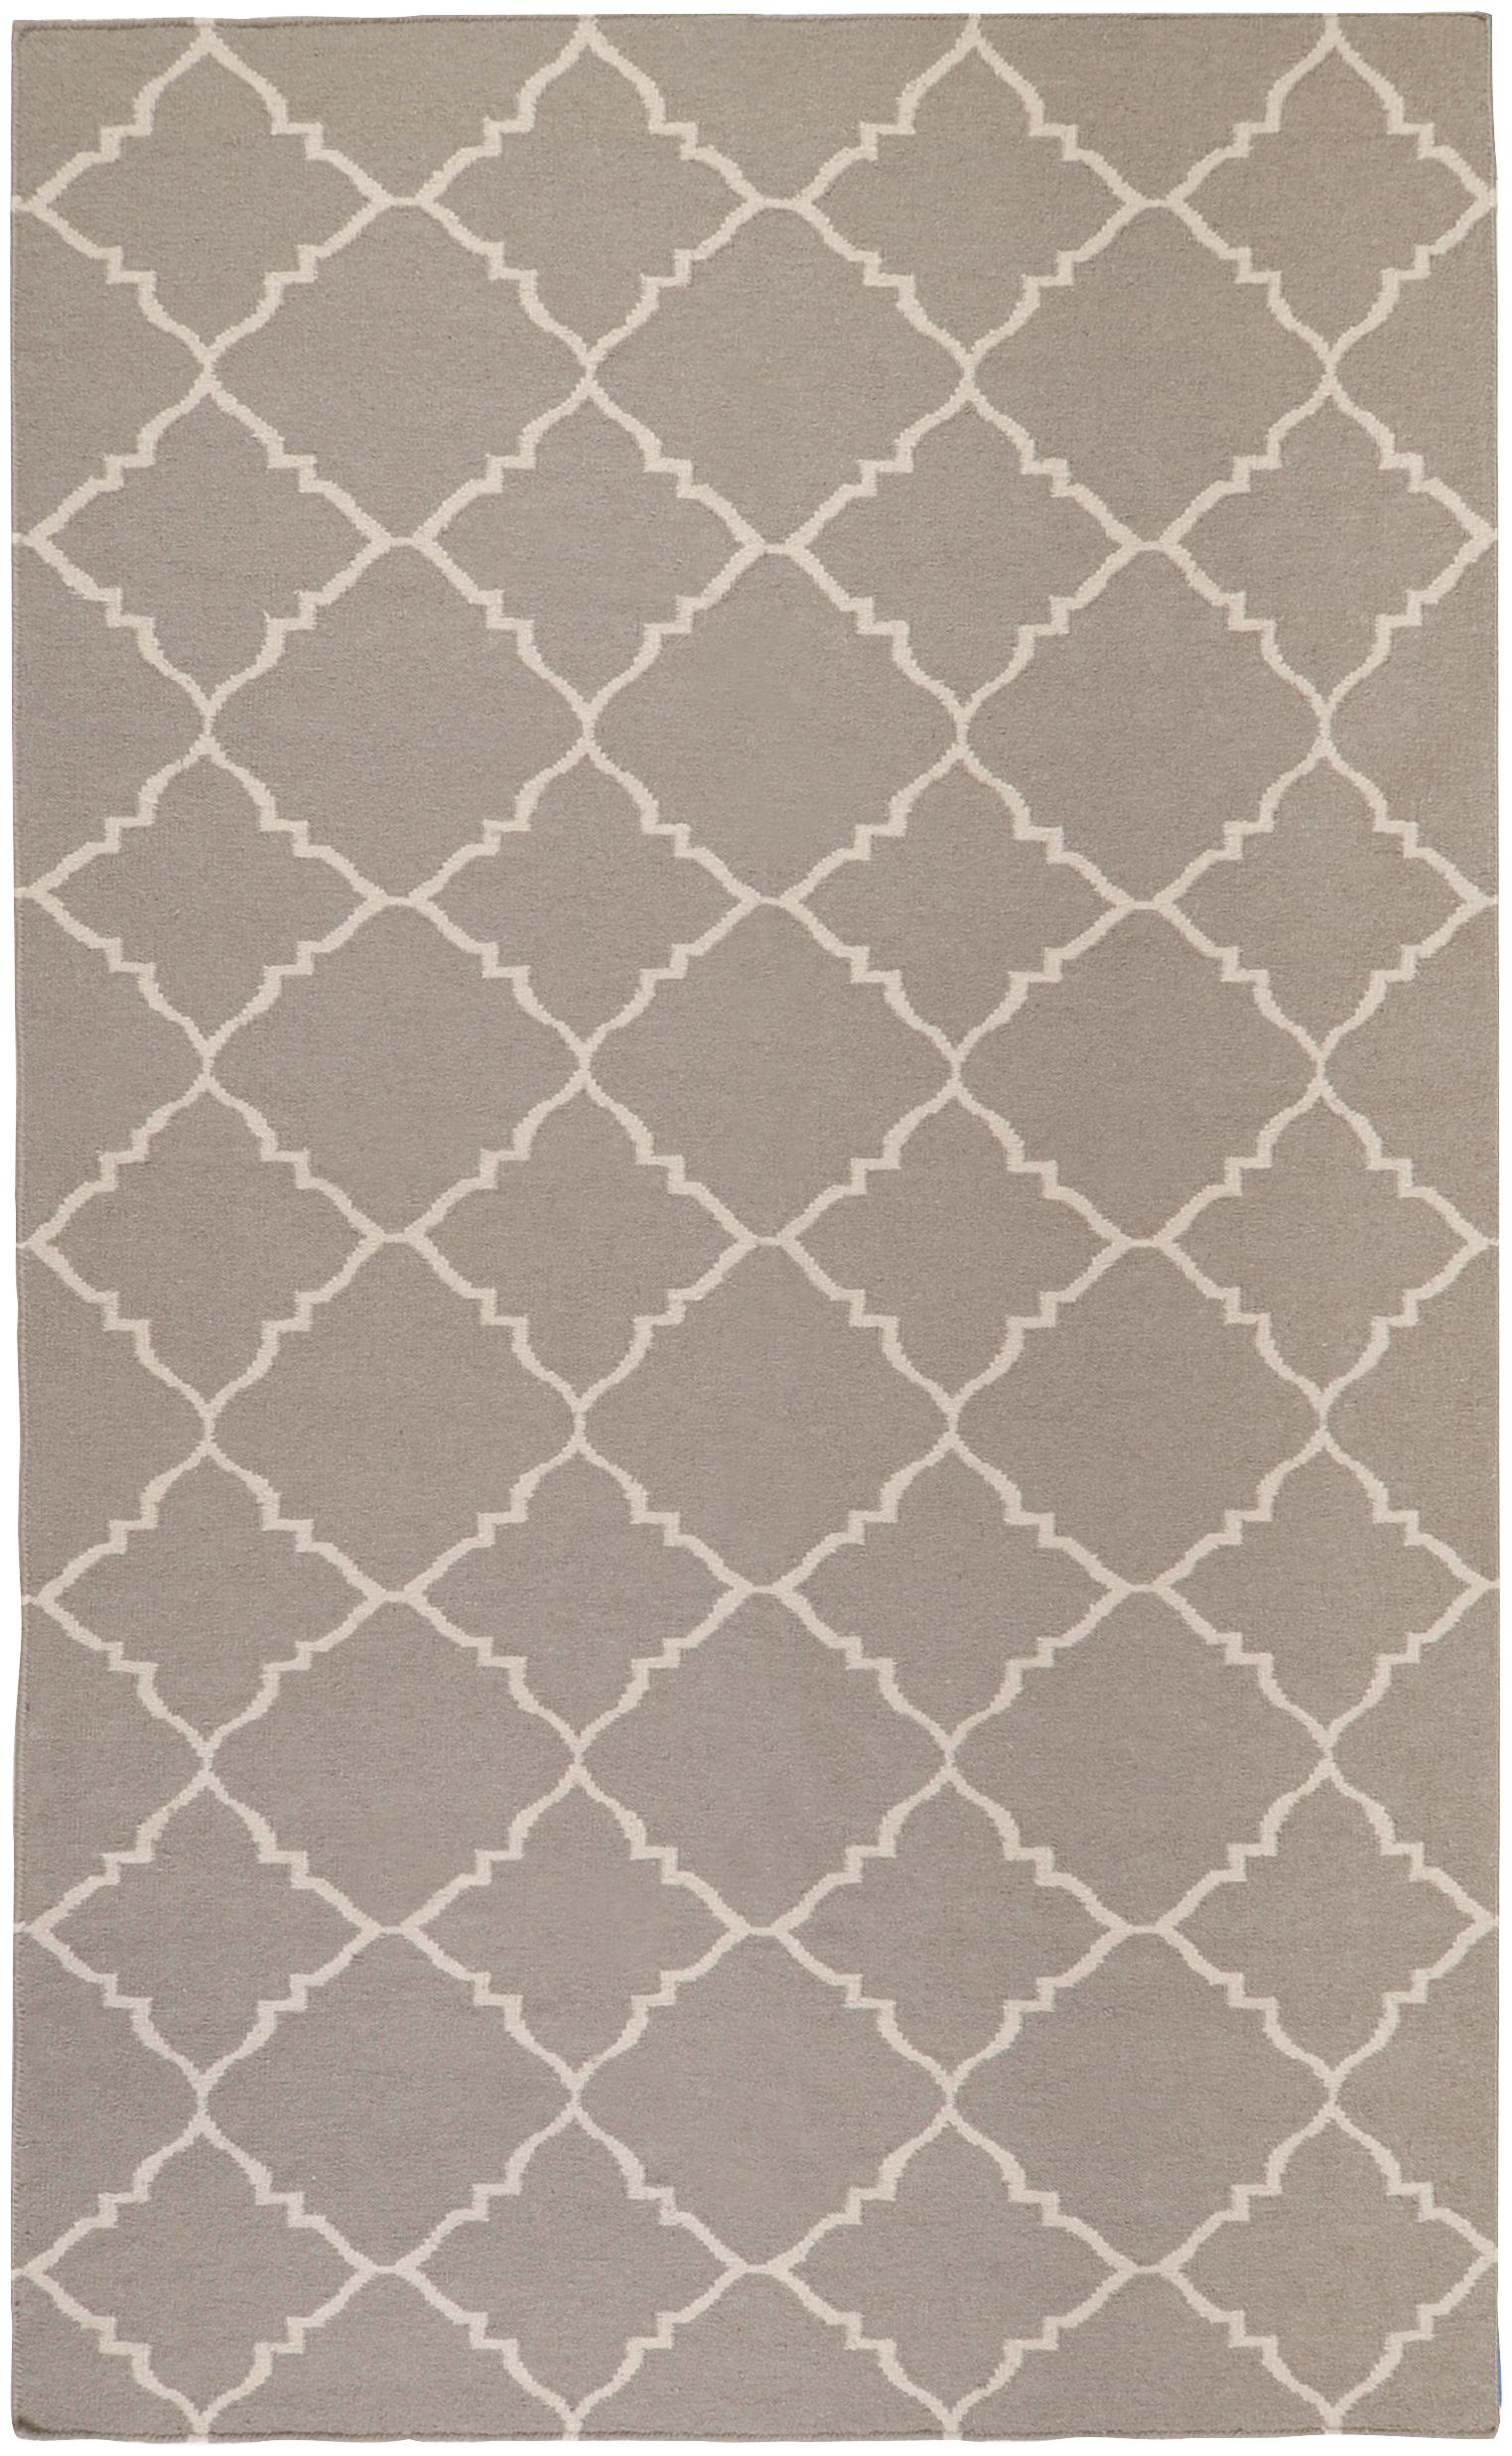 Frontier 9' x 13' by Surya at Michael Alan Furniture & Design